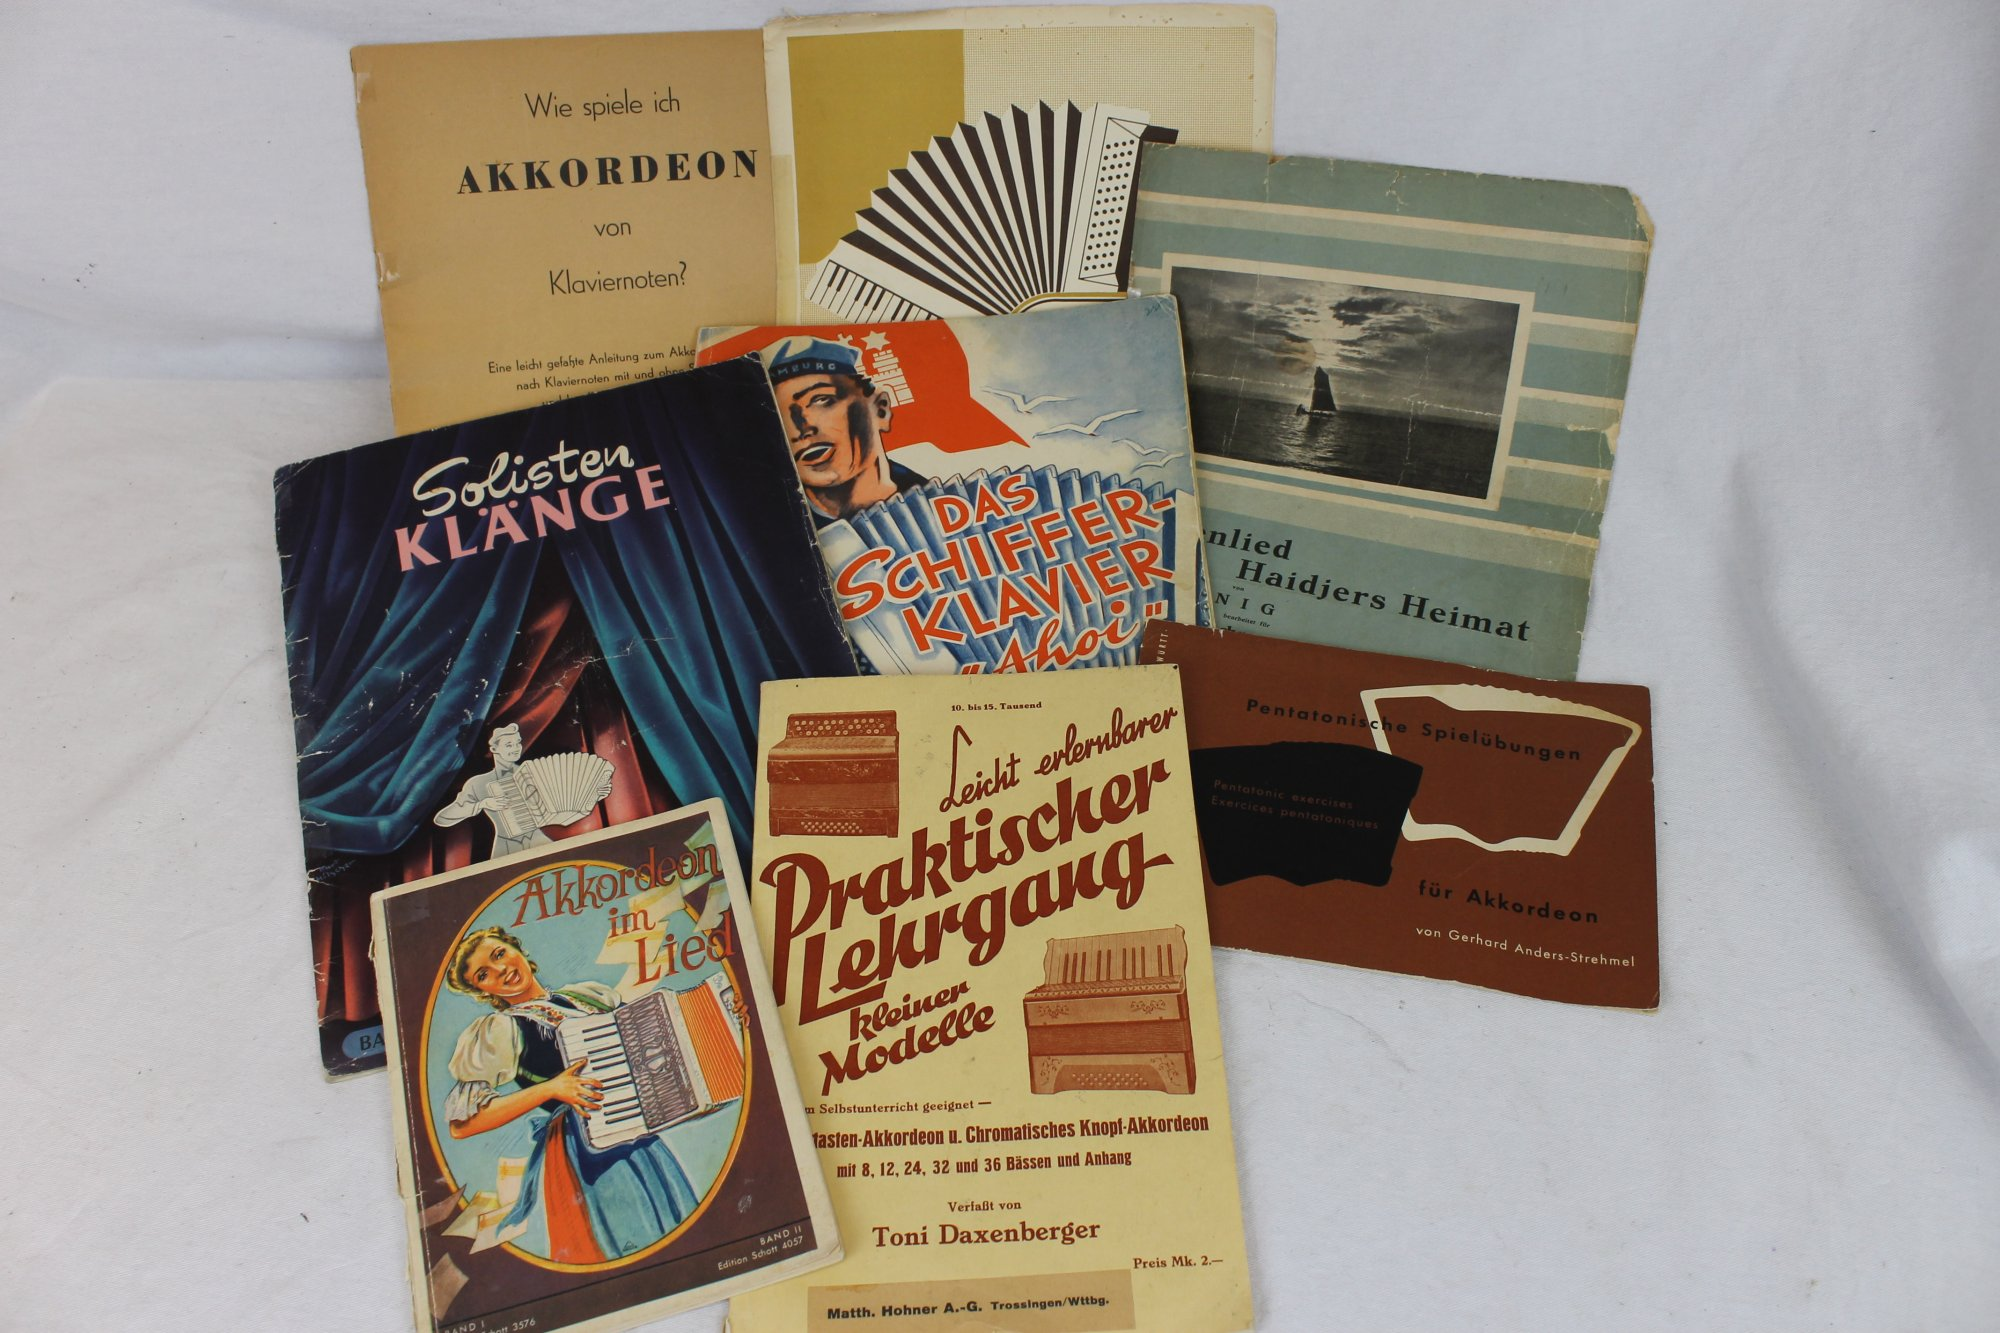 Lot of 8 Used Accordion Books and Sheets - German